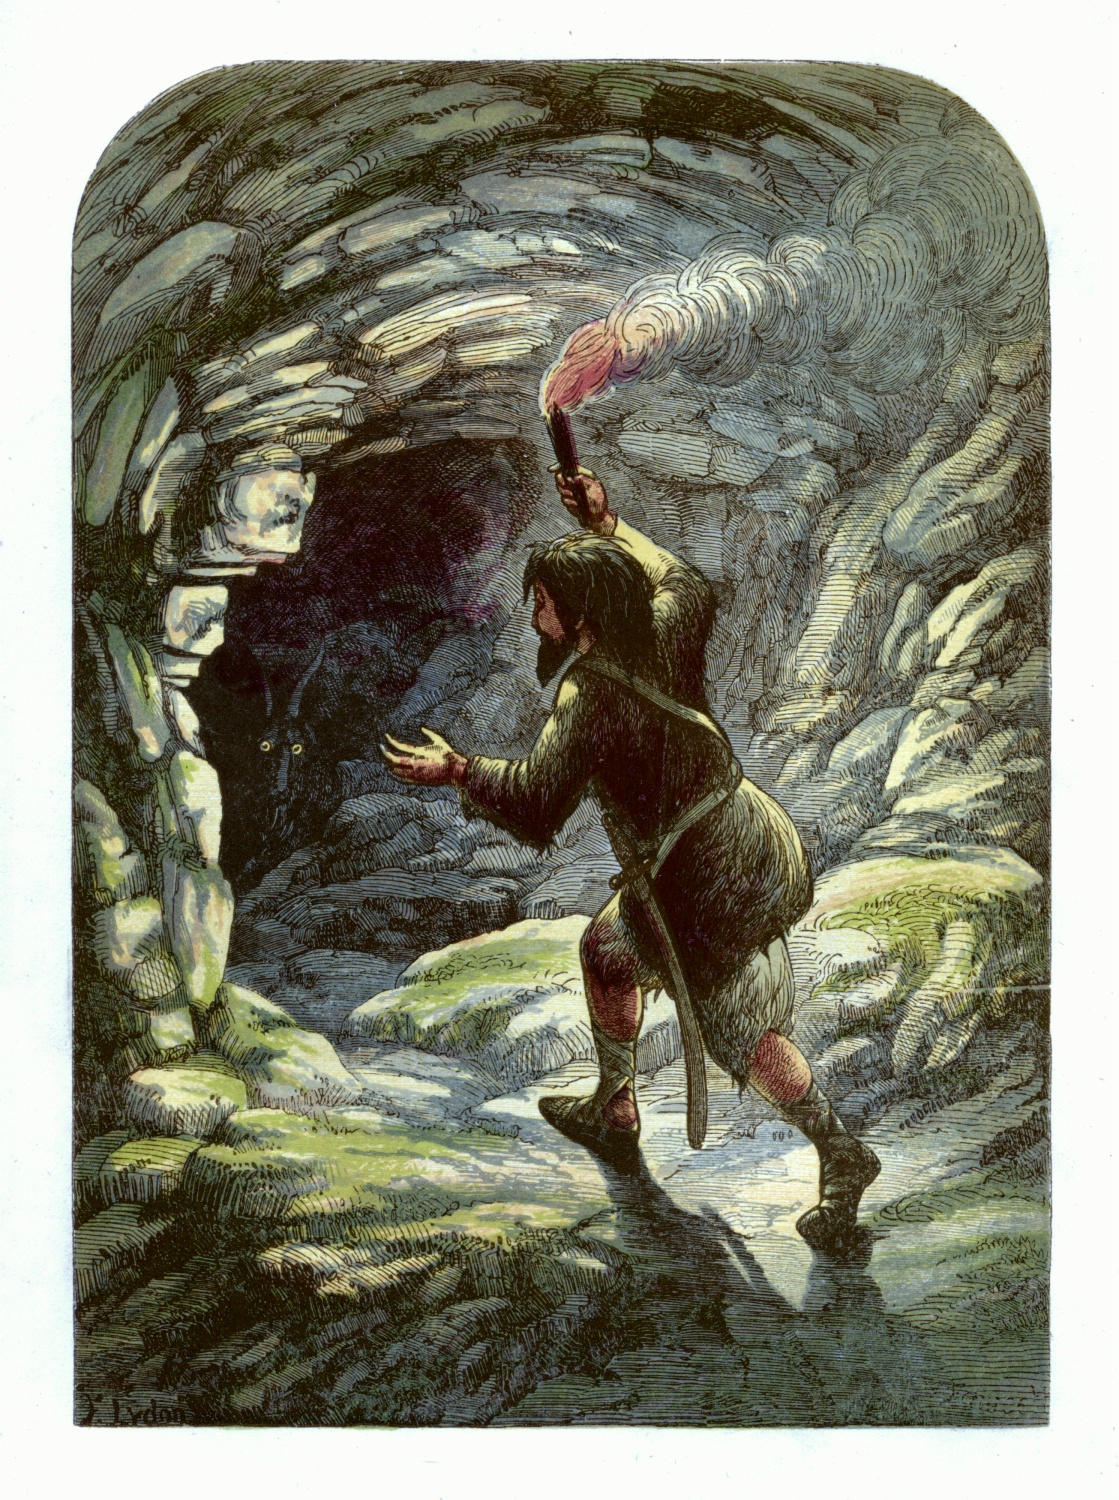 Robinson Crusoe frightened by a goat in a cave